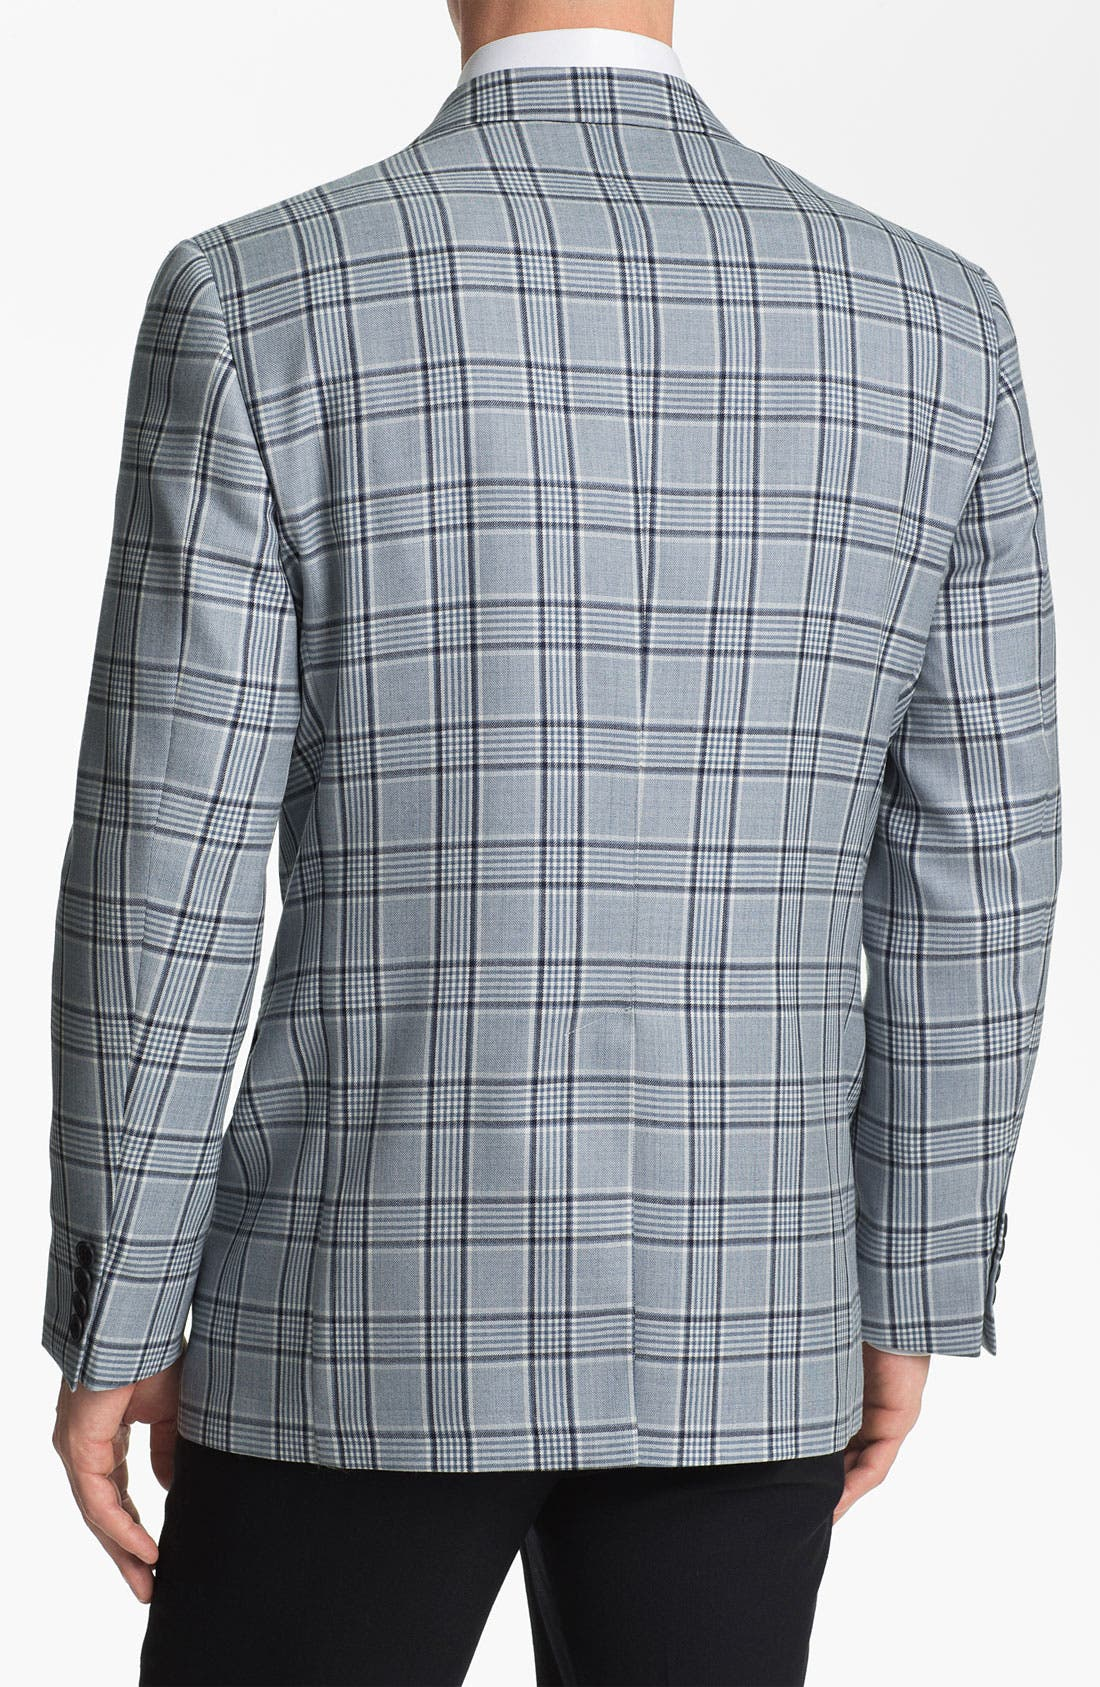 Alternate Image 2  - Joseph Abboud Plaid Sportcoat